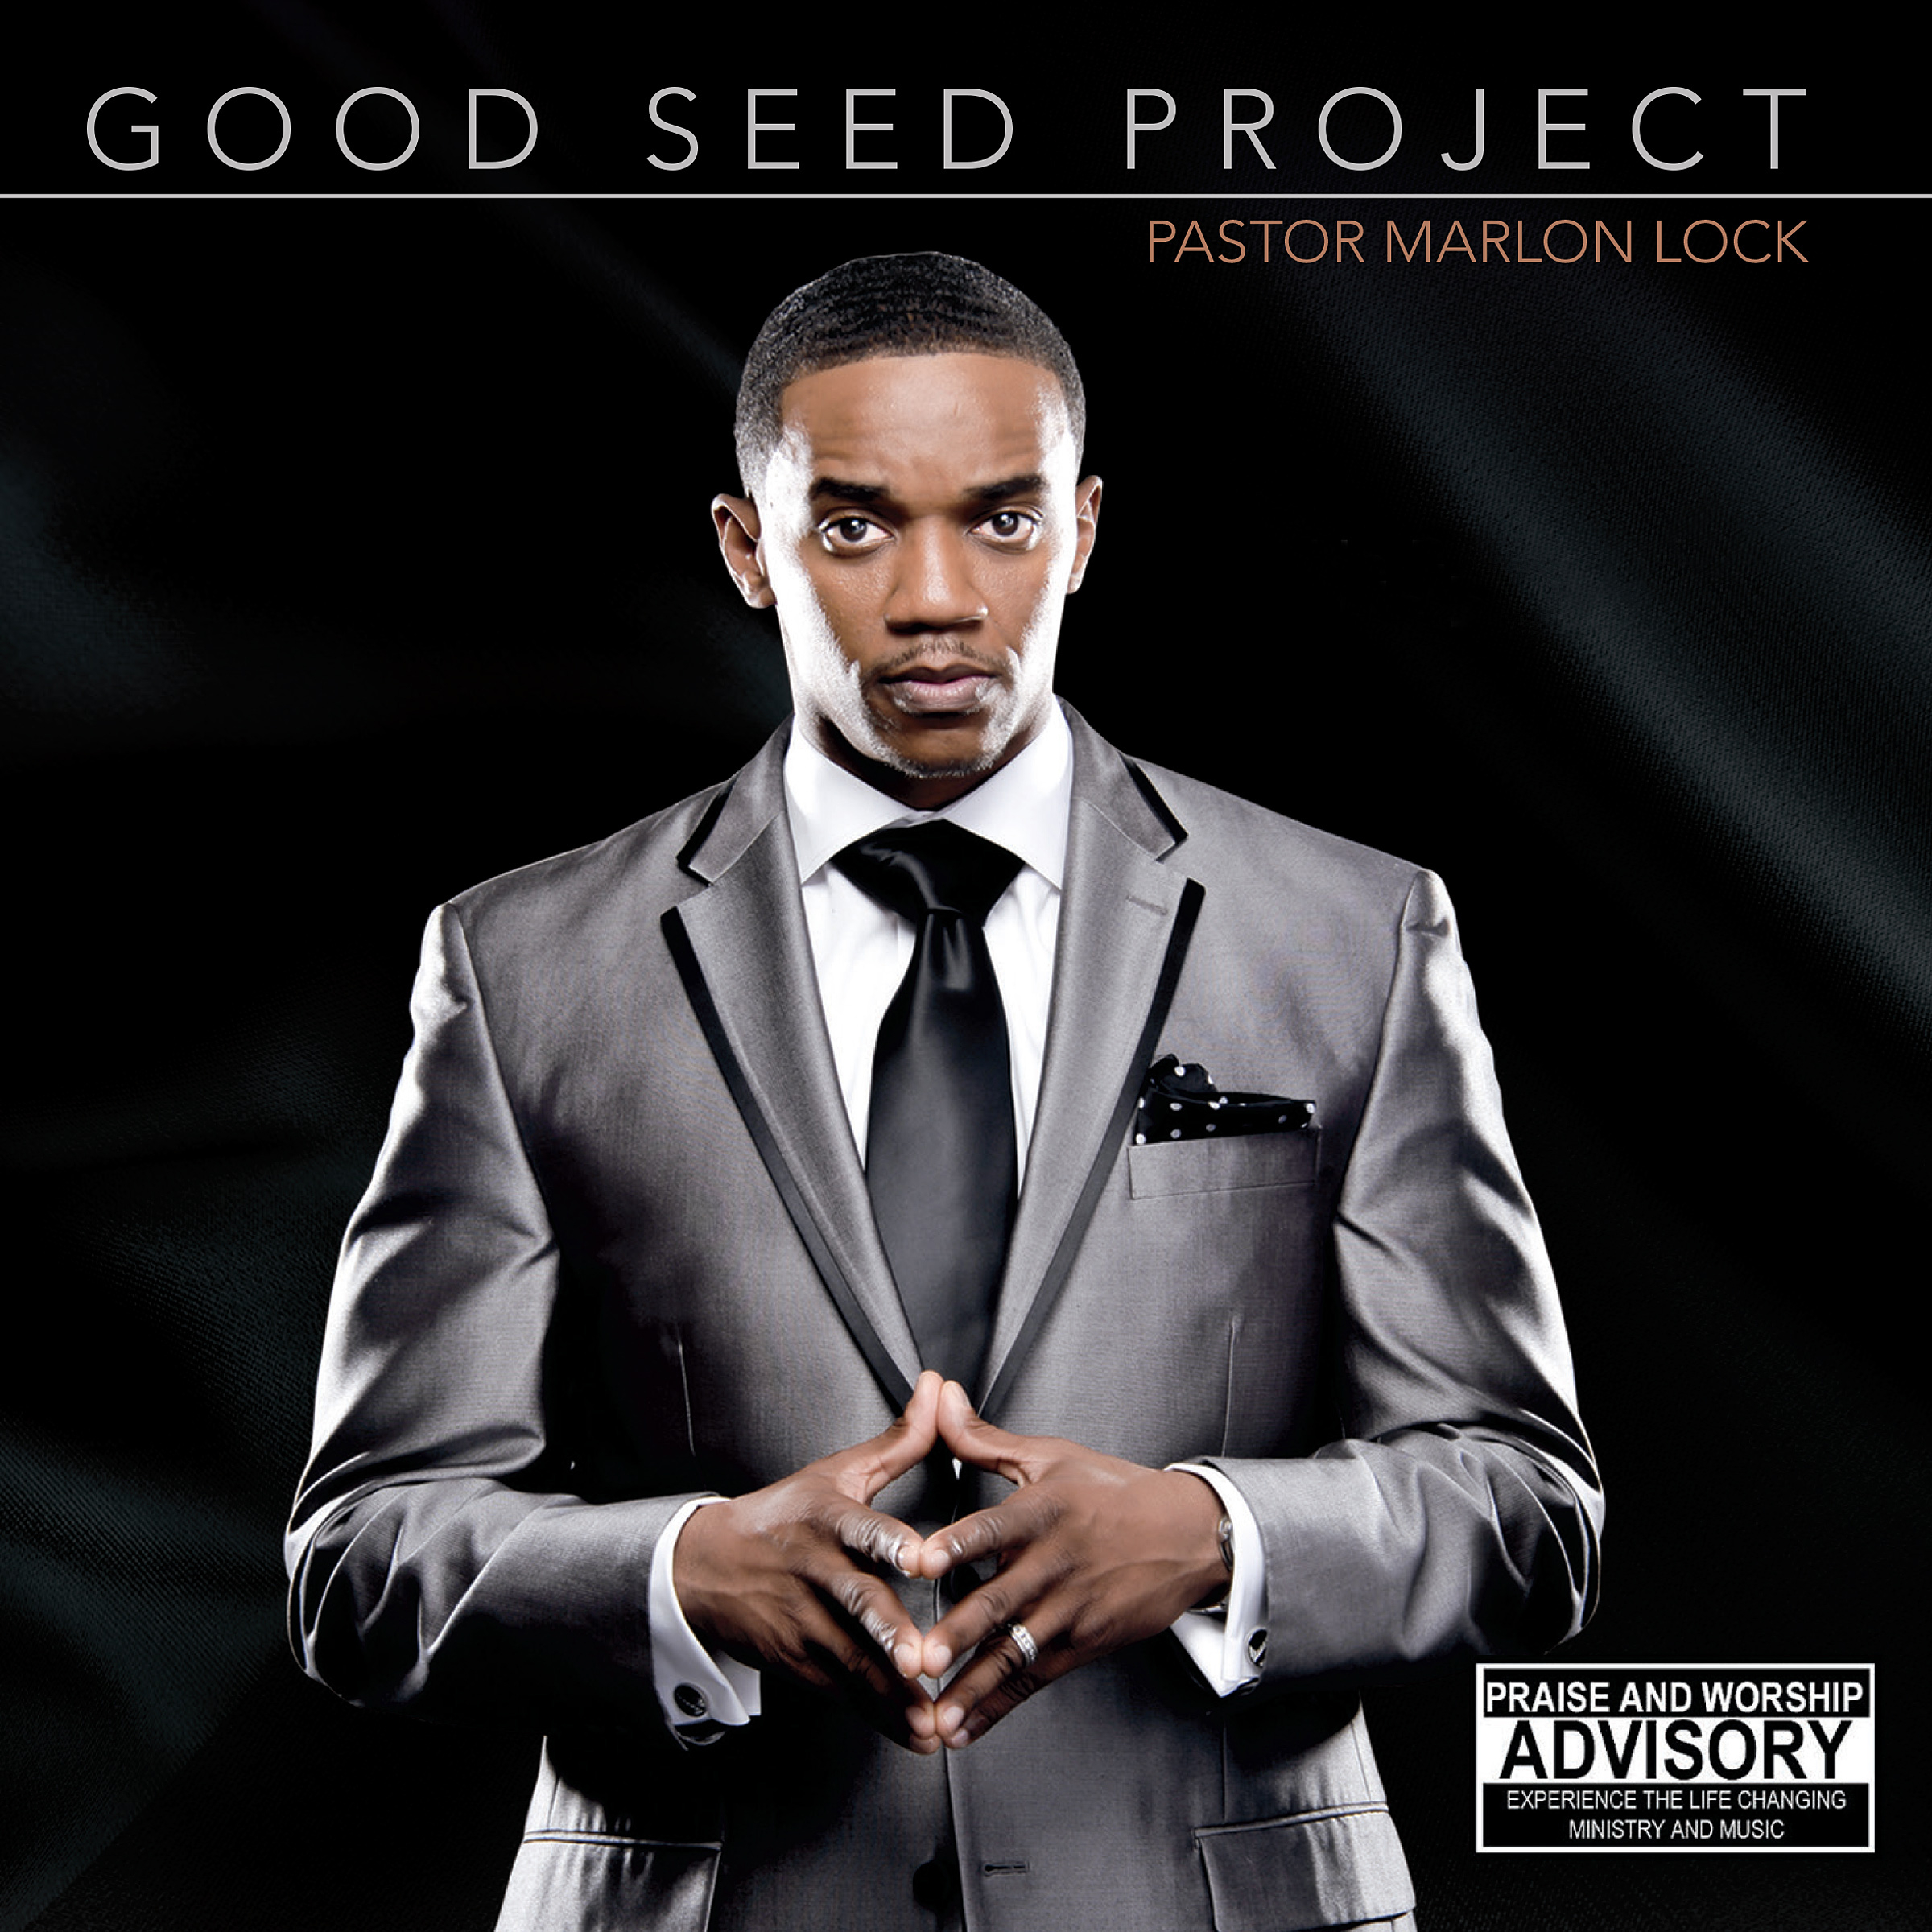 marlon_lock_good_seed_project